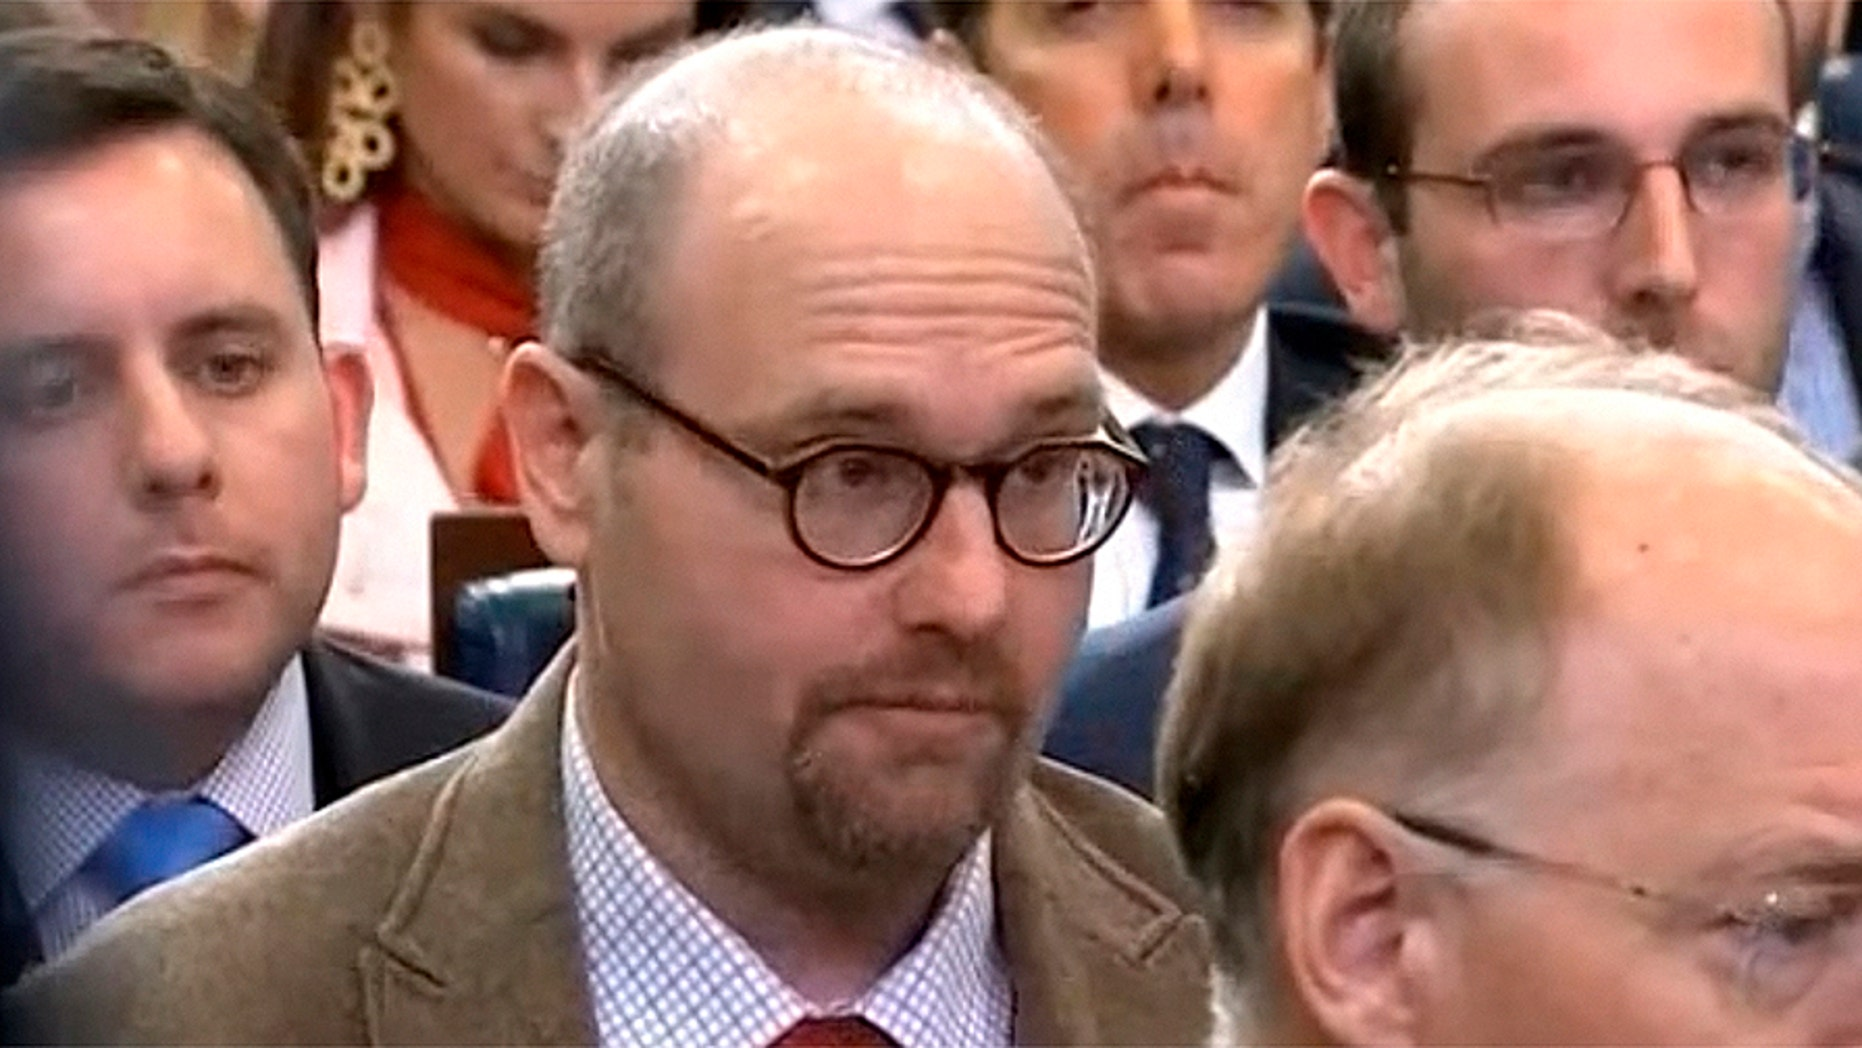 Glenn Thrush, seen here, will be moved off the White House beat, according to The New York Times.